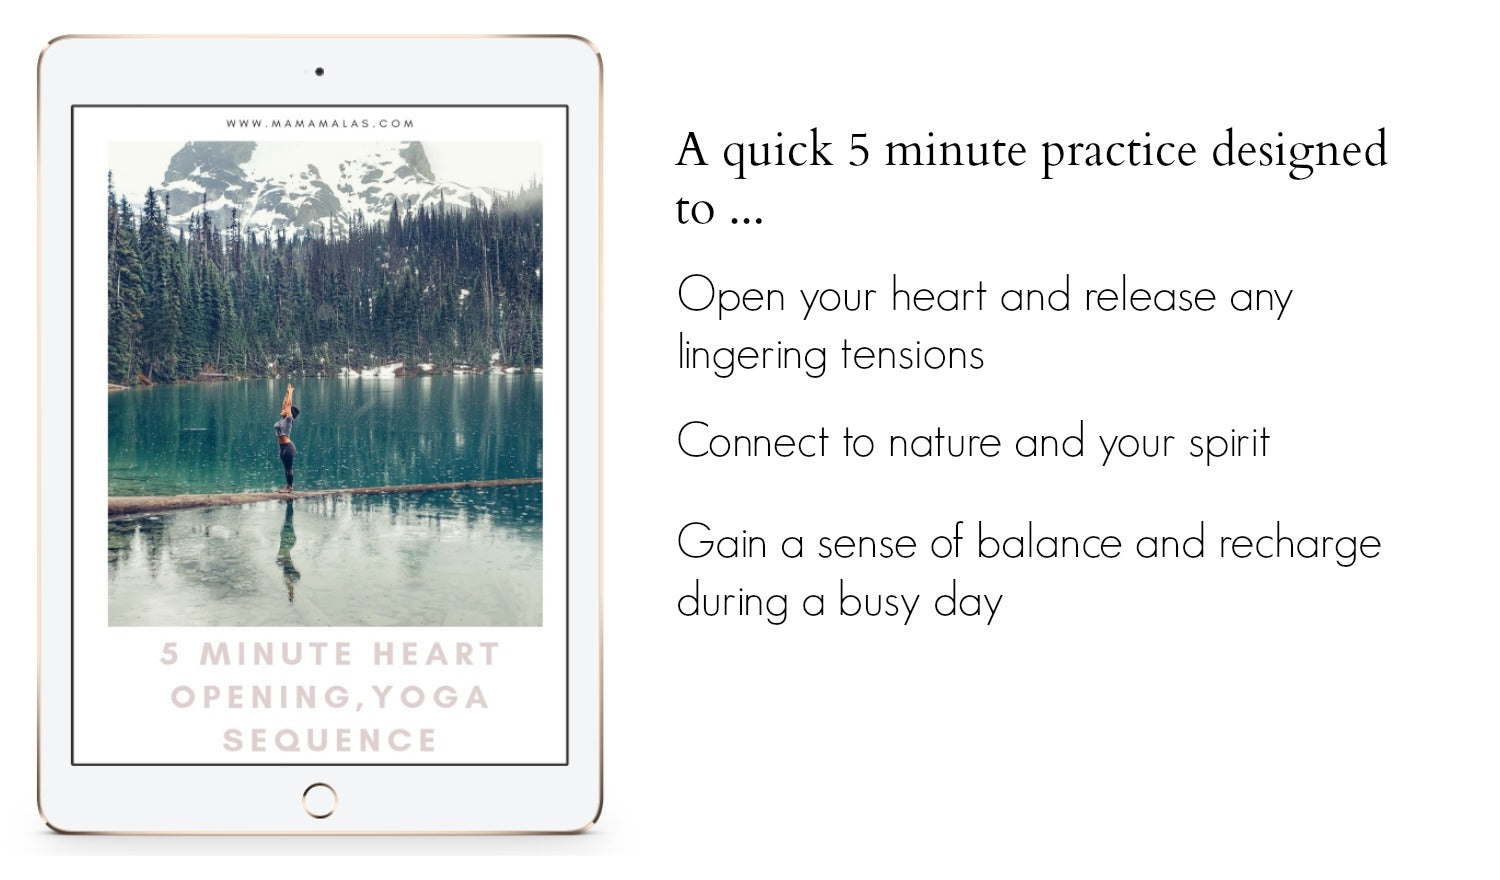 This quick 5 minute sequence will open your heart and connect you to nature and your spirit. It's the perfect routine to reset after a busy day and warm up during the cold days of winter.